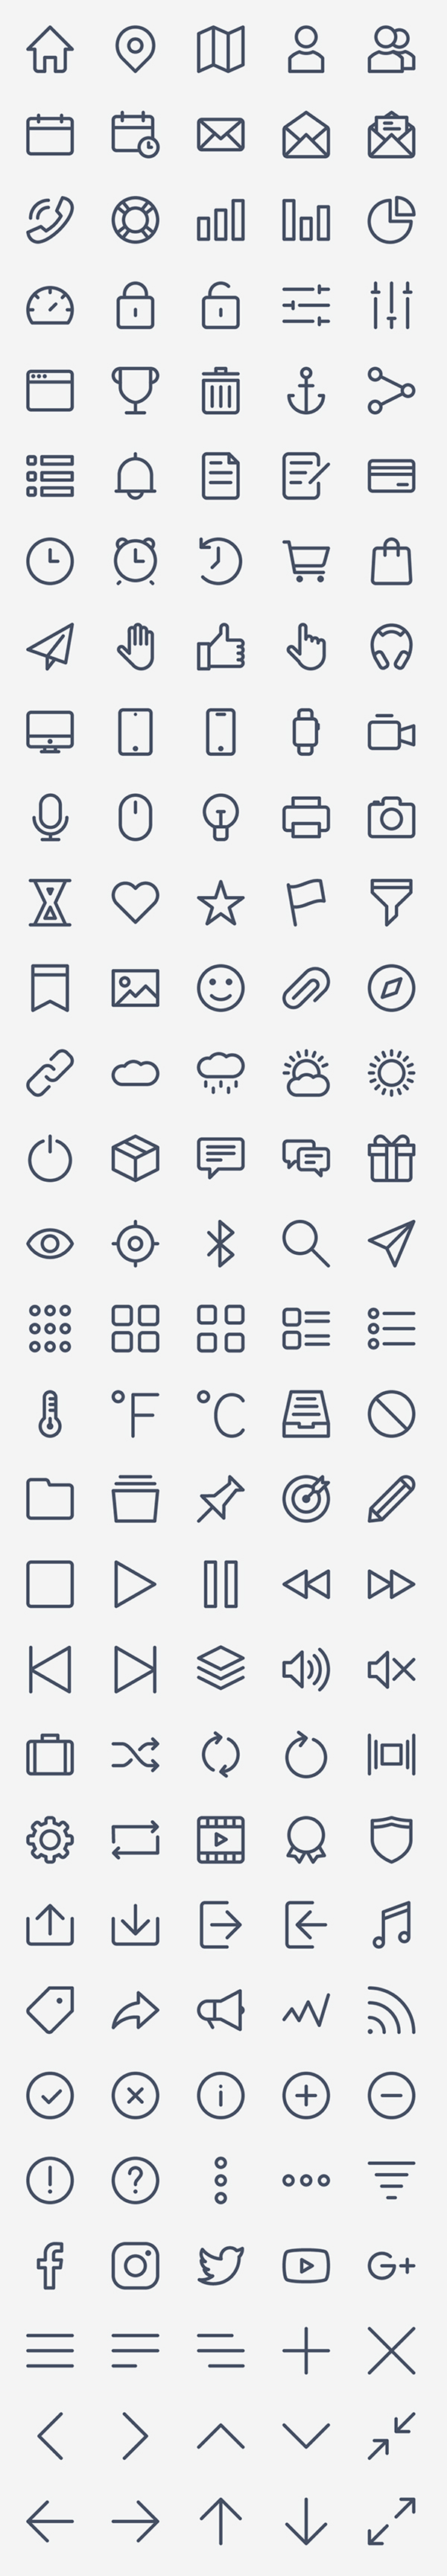 Free Basic Icon Set